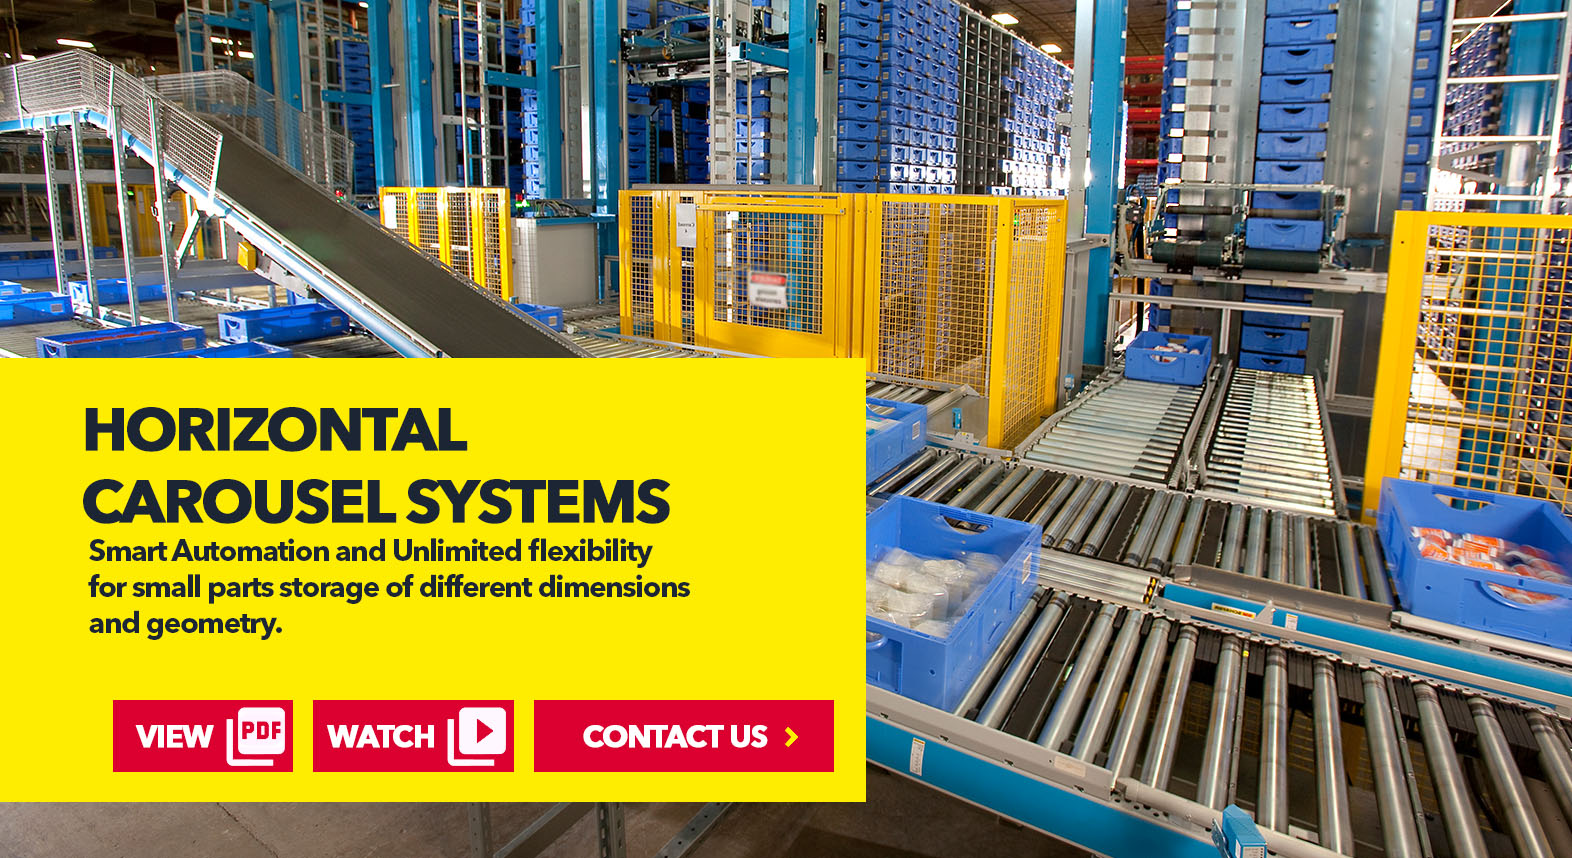 Horizontal Casousel Systems by SSI Schaefer USA Download Guide, Watch Video, Contact Us. www.chaefershelving.com